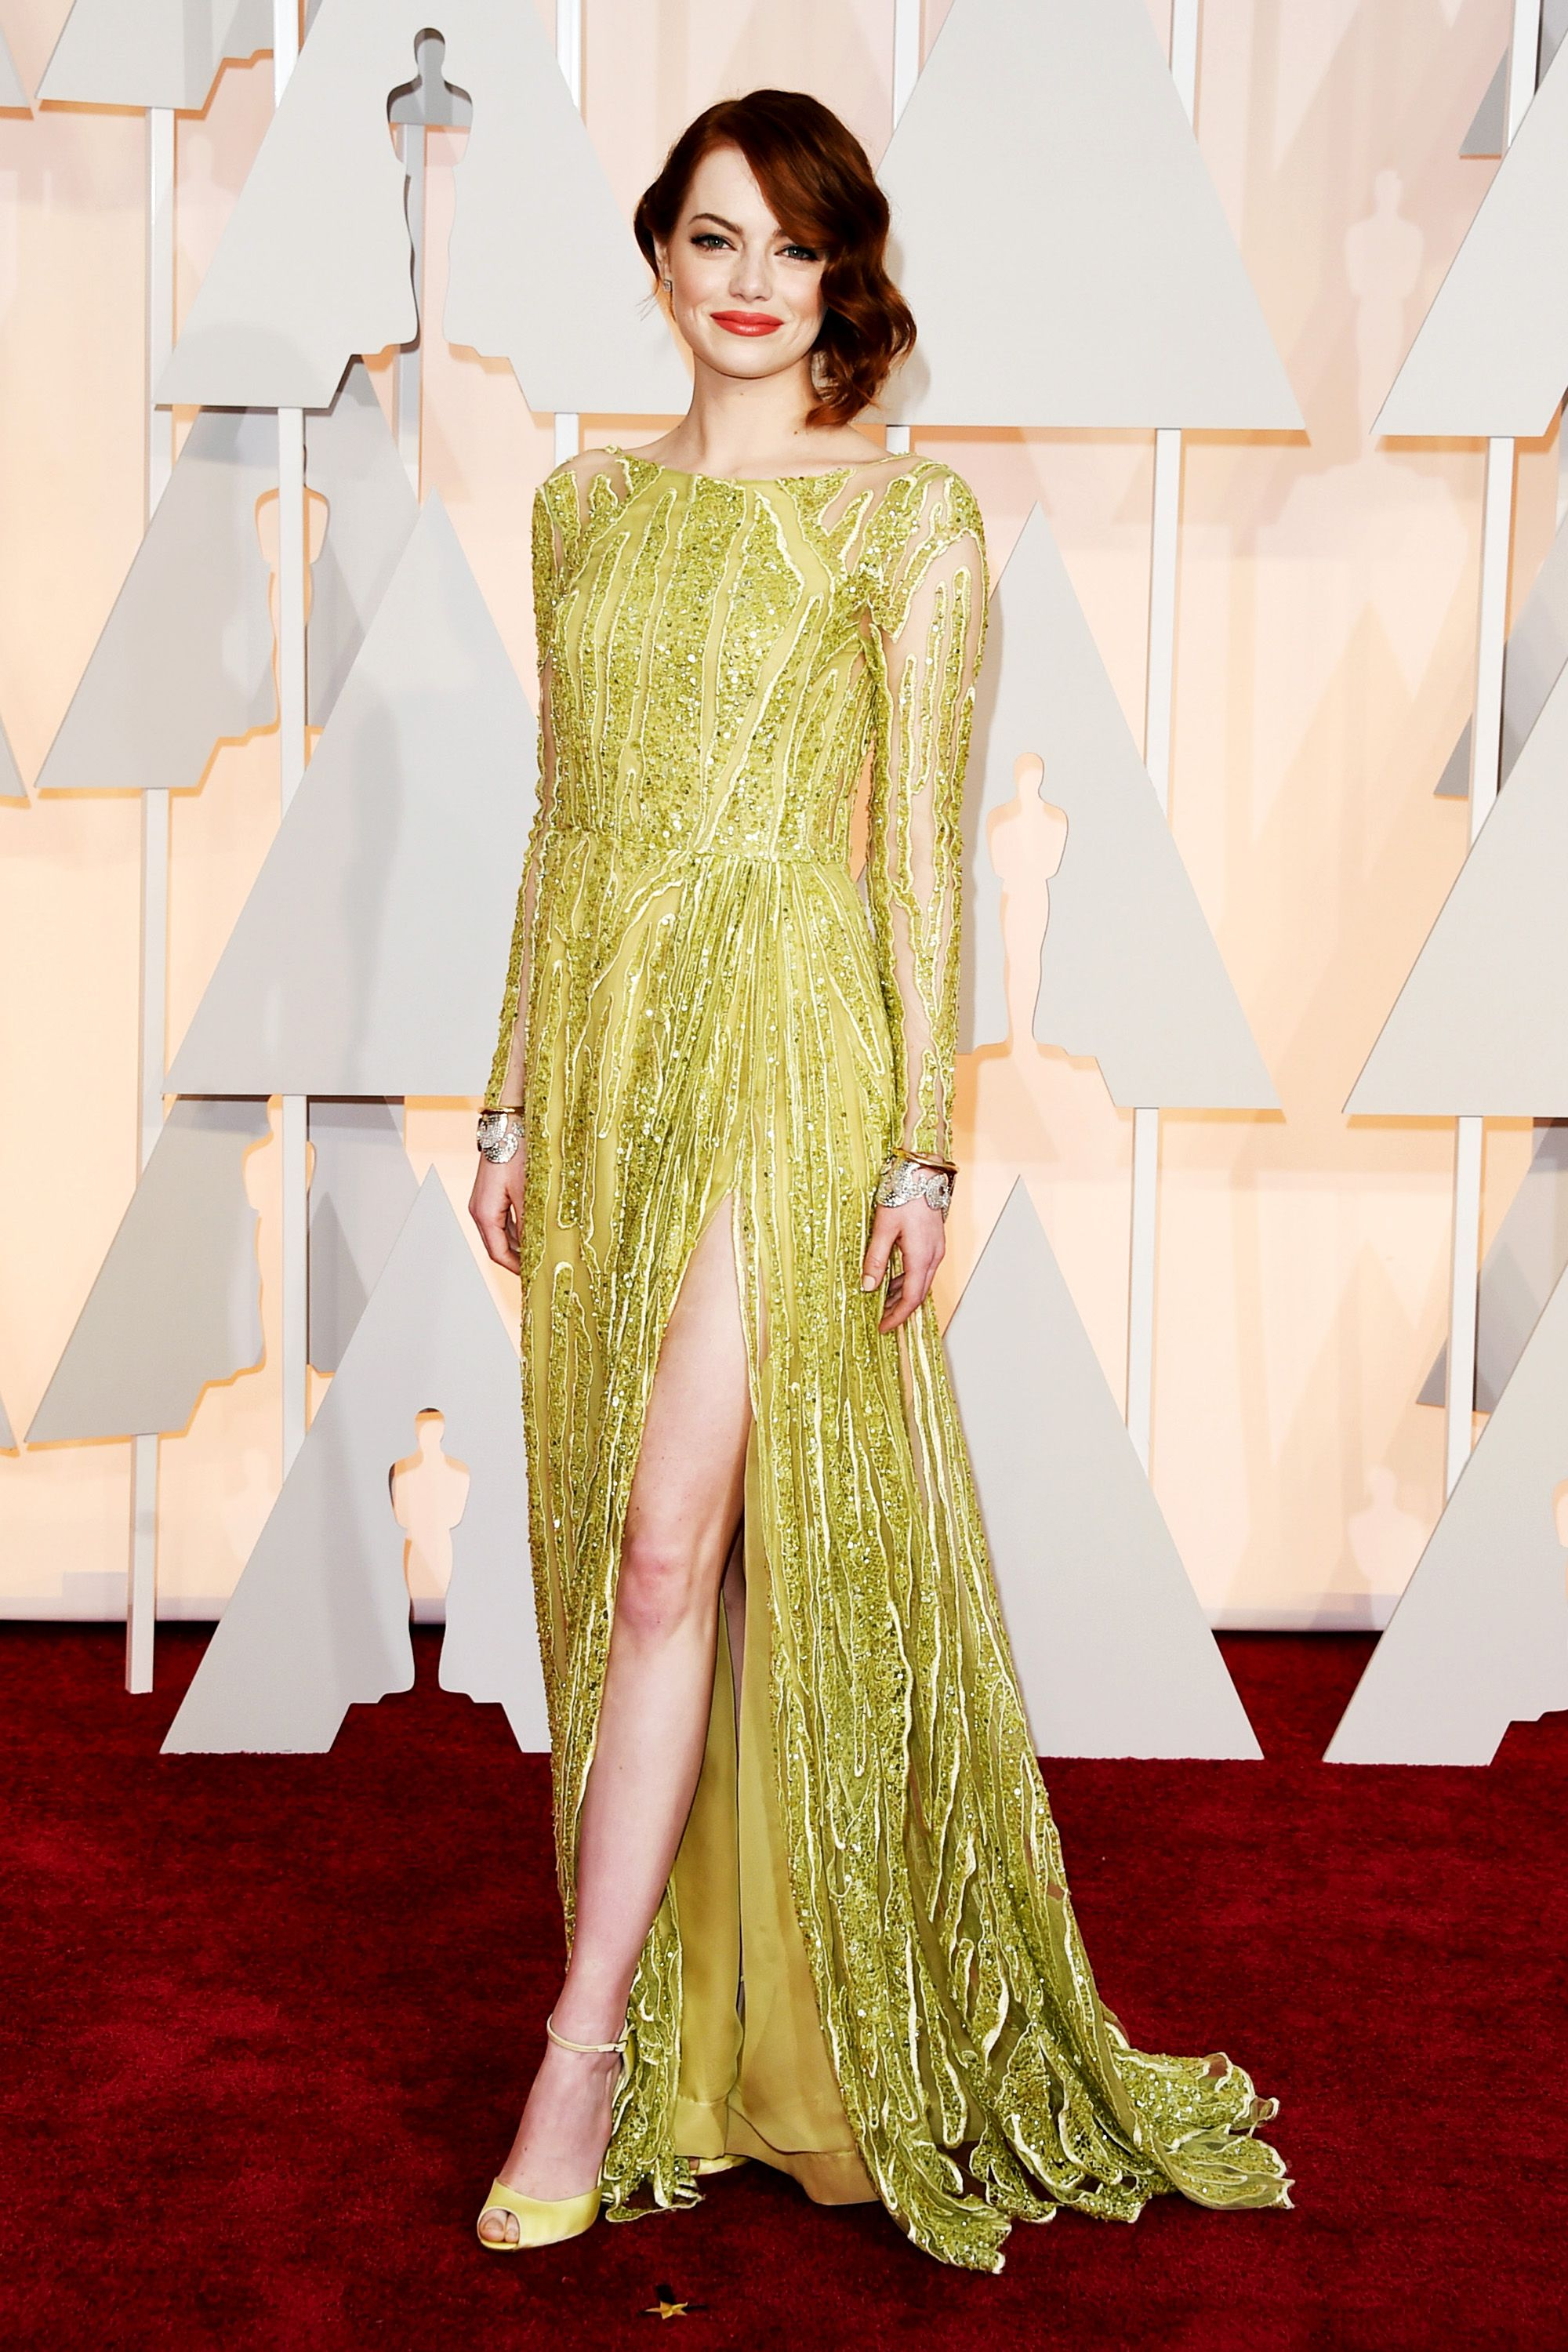 HOLLYWOOD, CA - FEBRUARY 22:  Emma Stone attends the 87th Annual Academy Awards at Hollywood & Highland Center on February 22, 2015 in Hollywood, California.  (Photo by Jason Merritt/Getty Images)